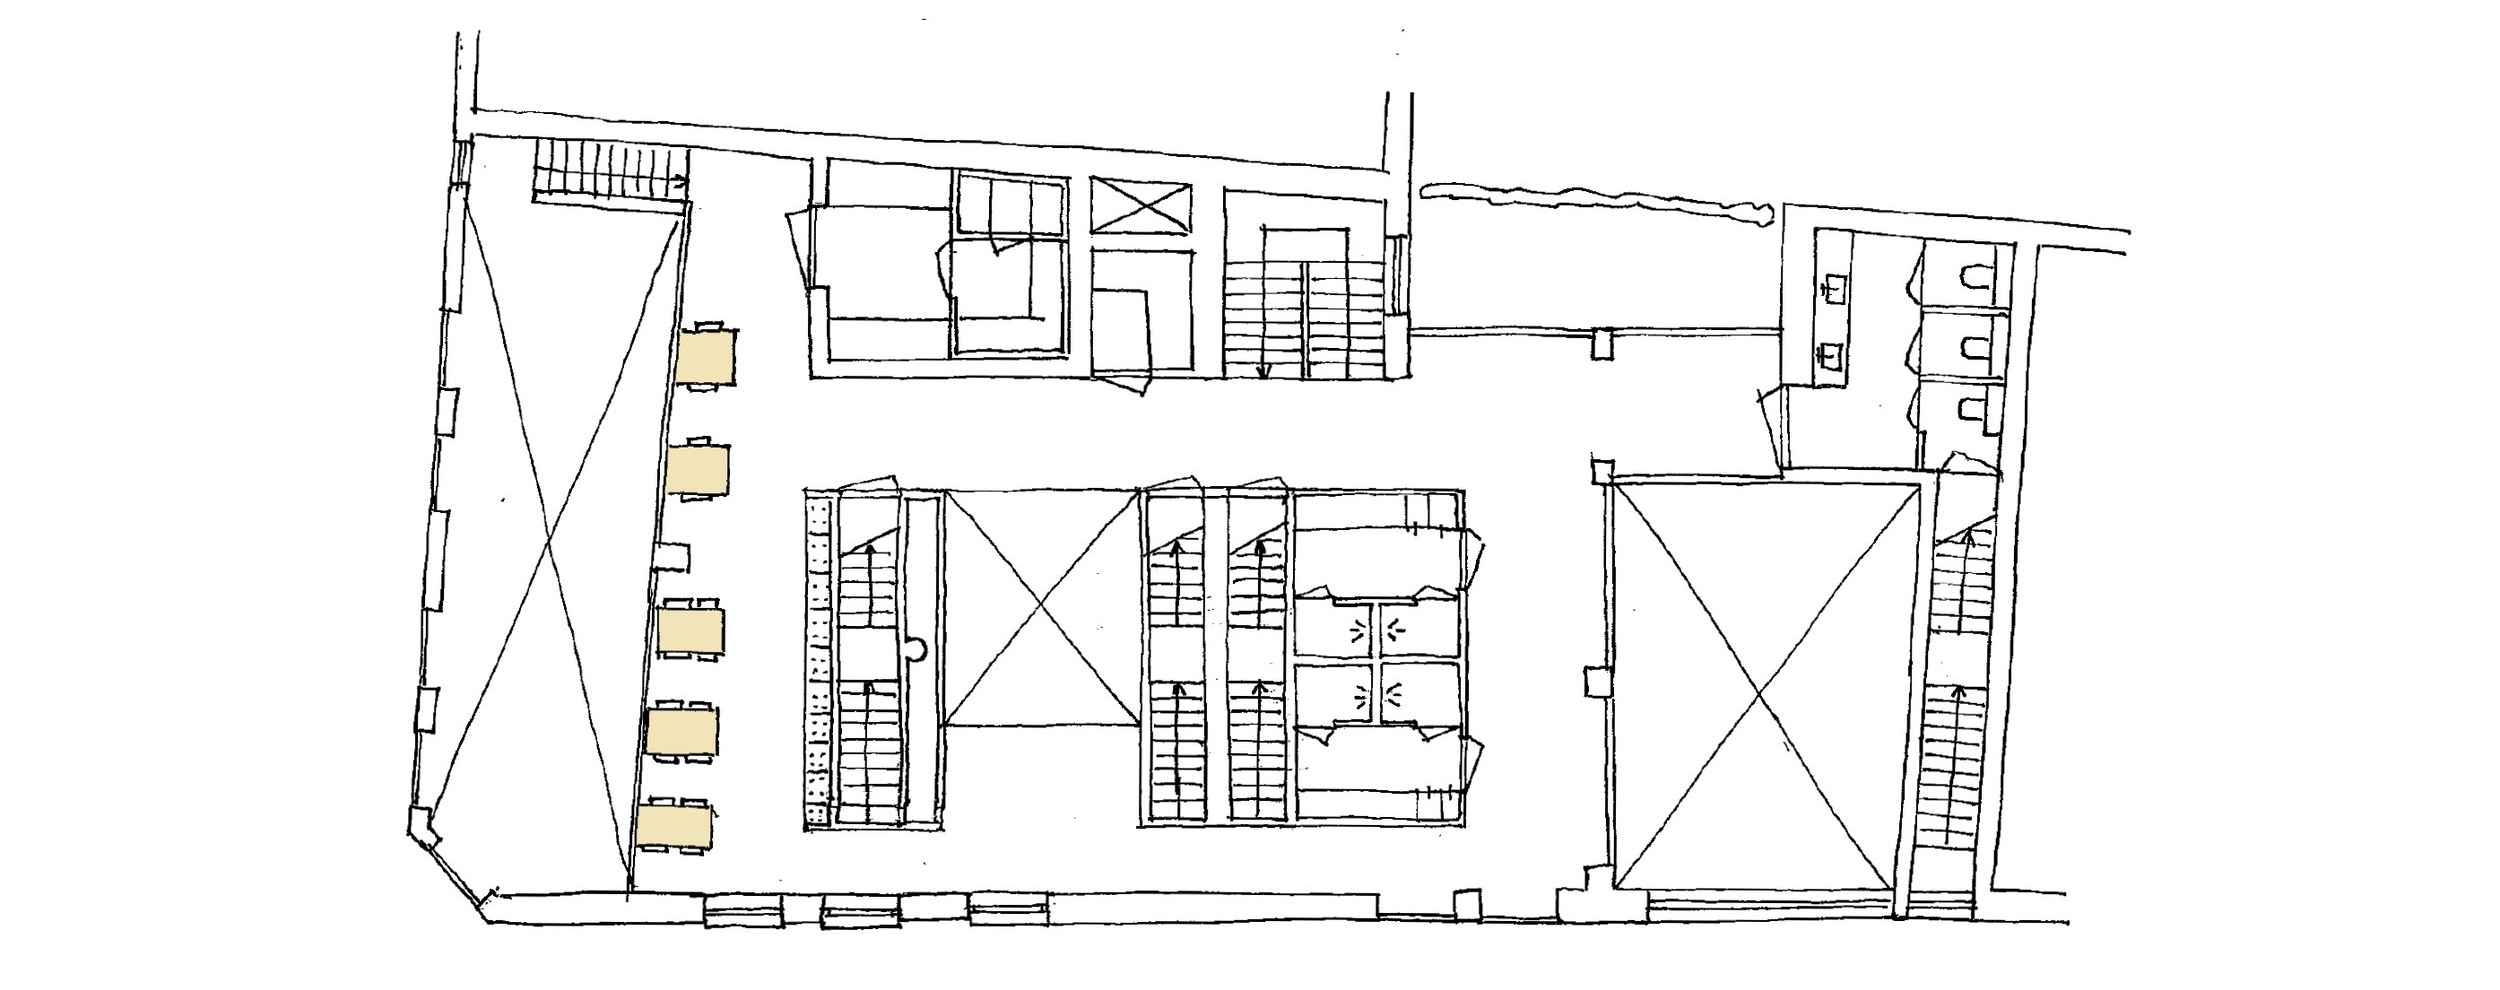 plan of the mezzanine showing seating area, storage space and toilets